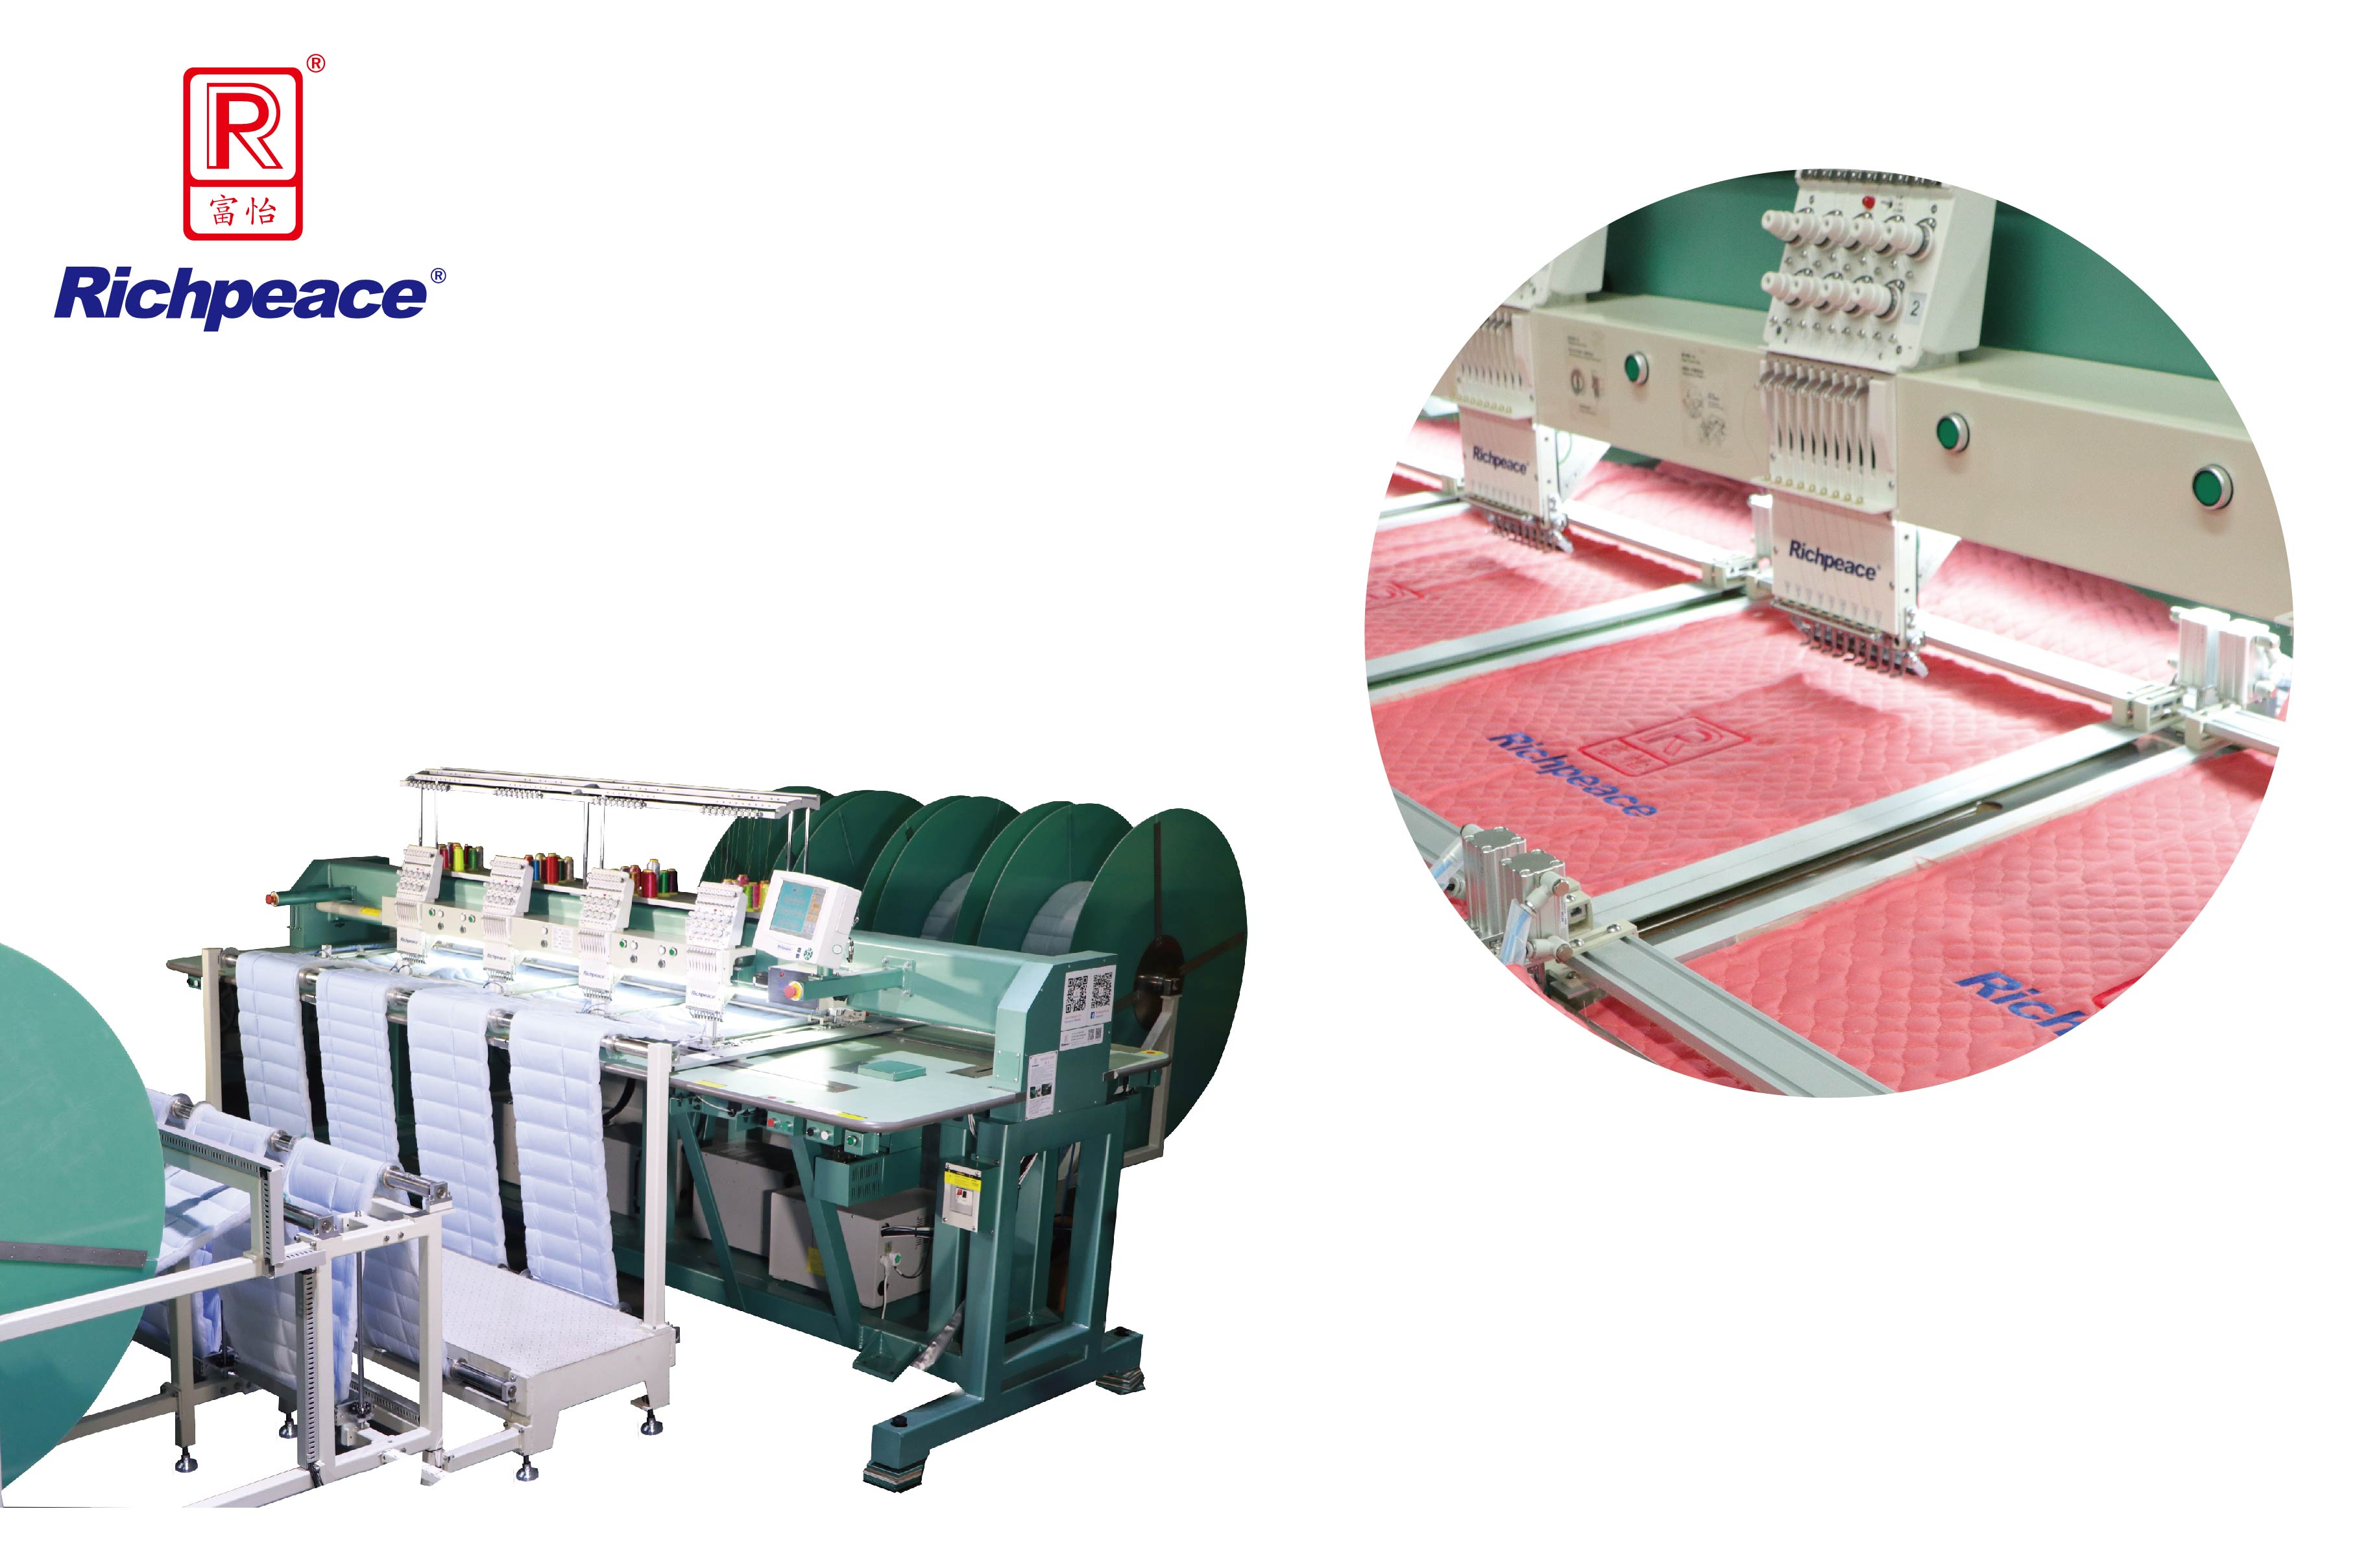 Richpeace Continuous Feeding Mattress Border Embroidery Machine